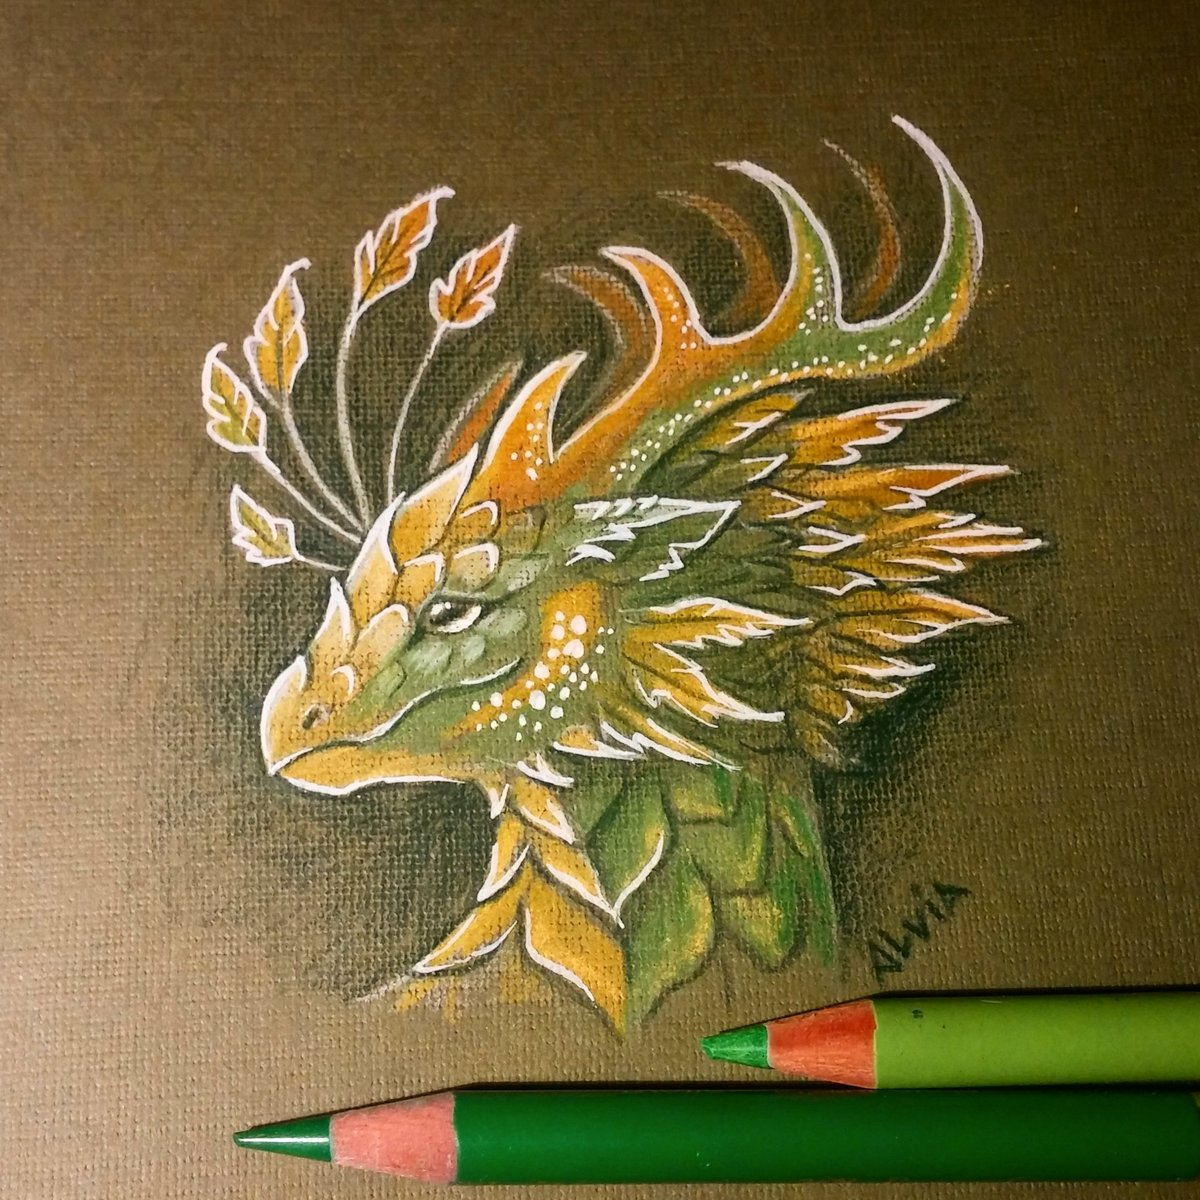 Dragon of a golden leafs forest  #dragon #fantasy #art #drawing <br>http://pic.twitter.com/3x4EB9ymKf